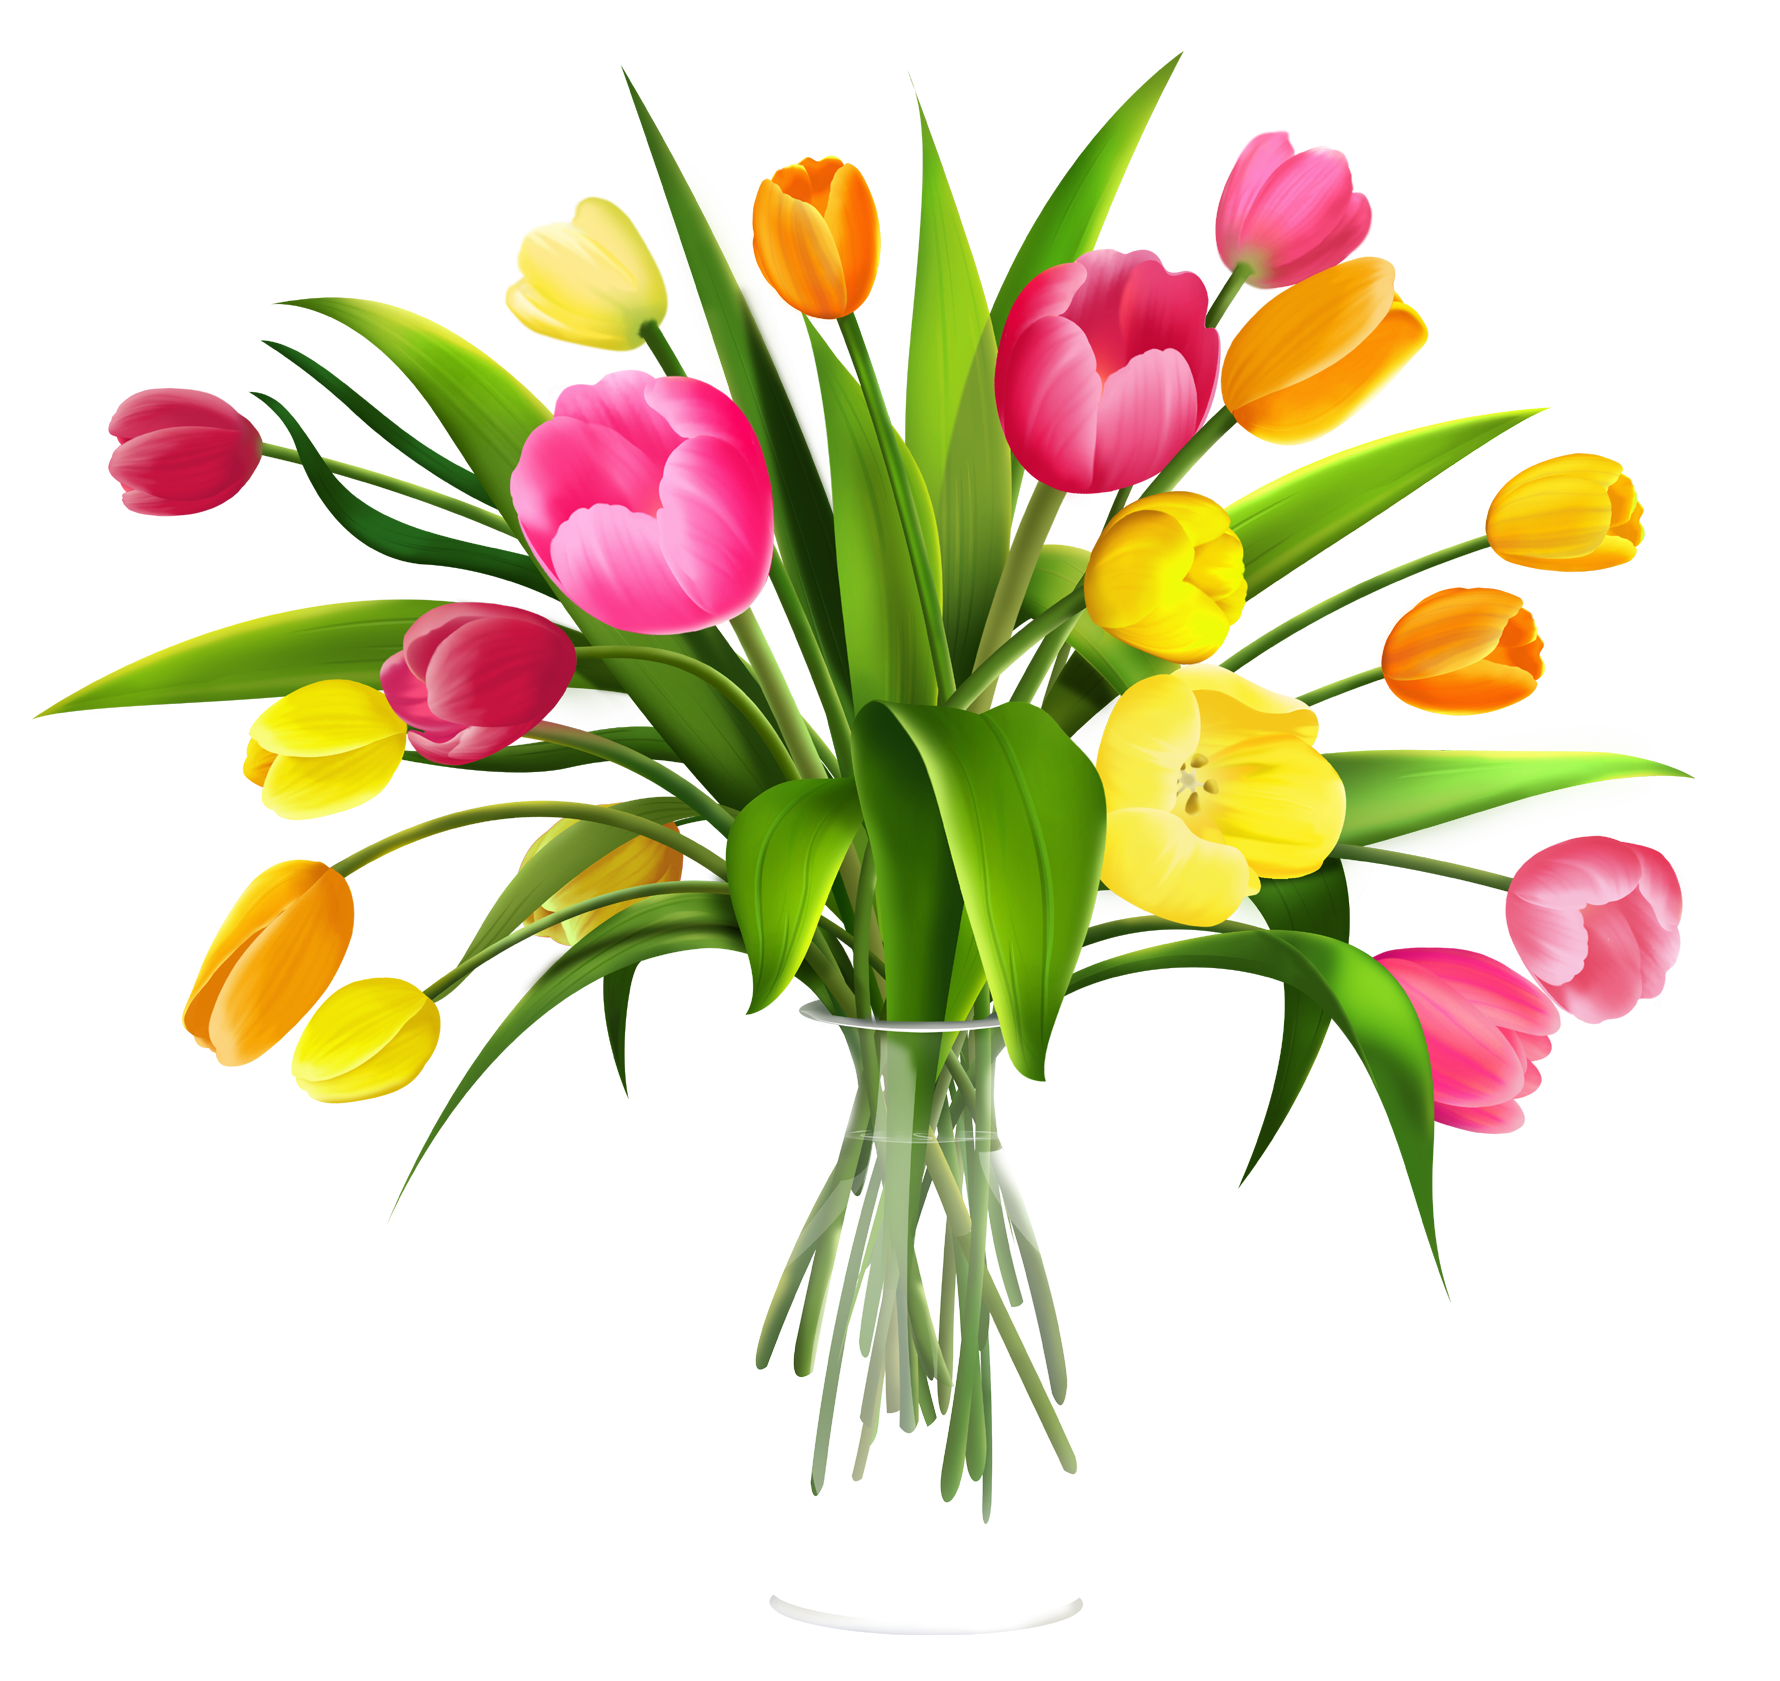 Free clip art flowers. Daffodil clipart tulip clip art royalty free library